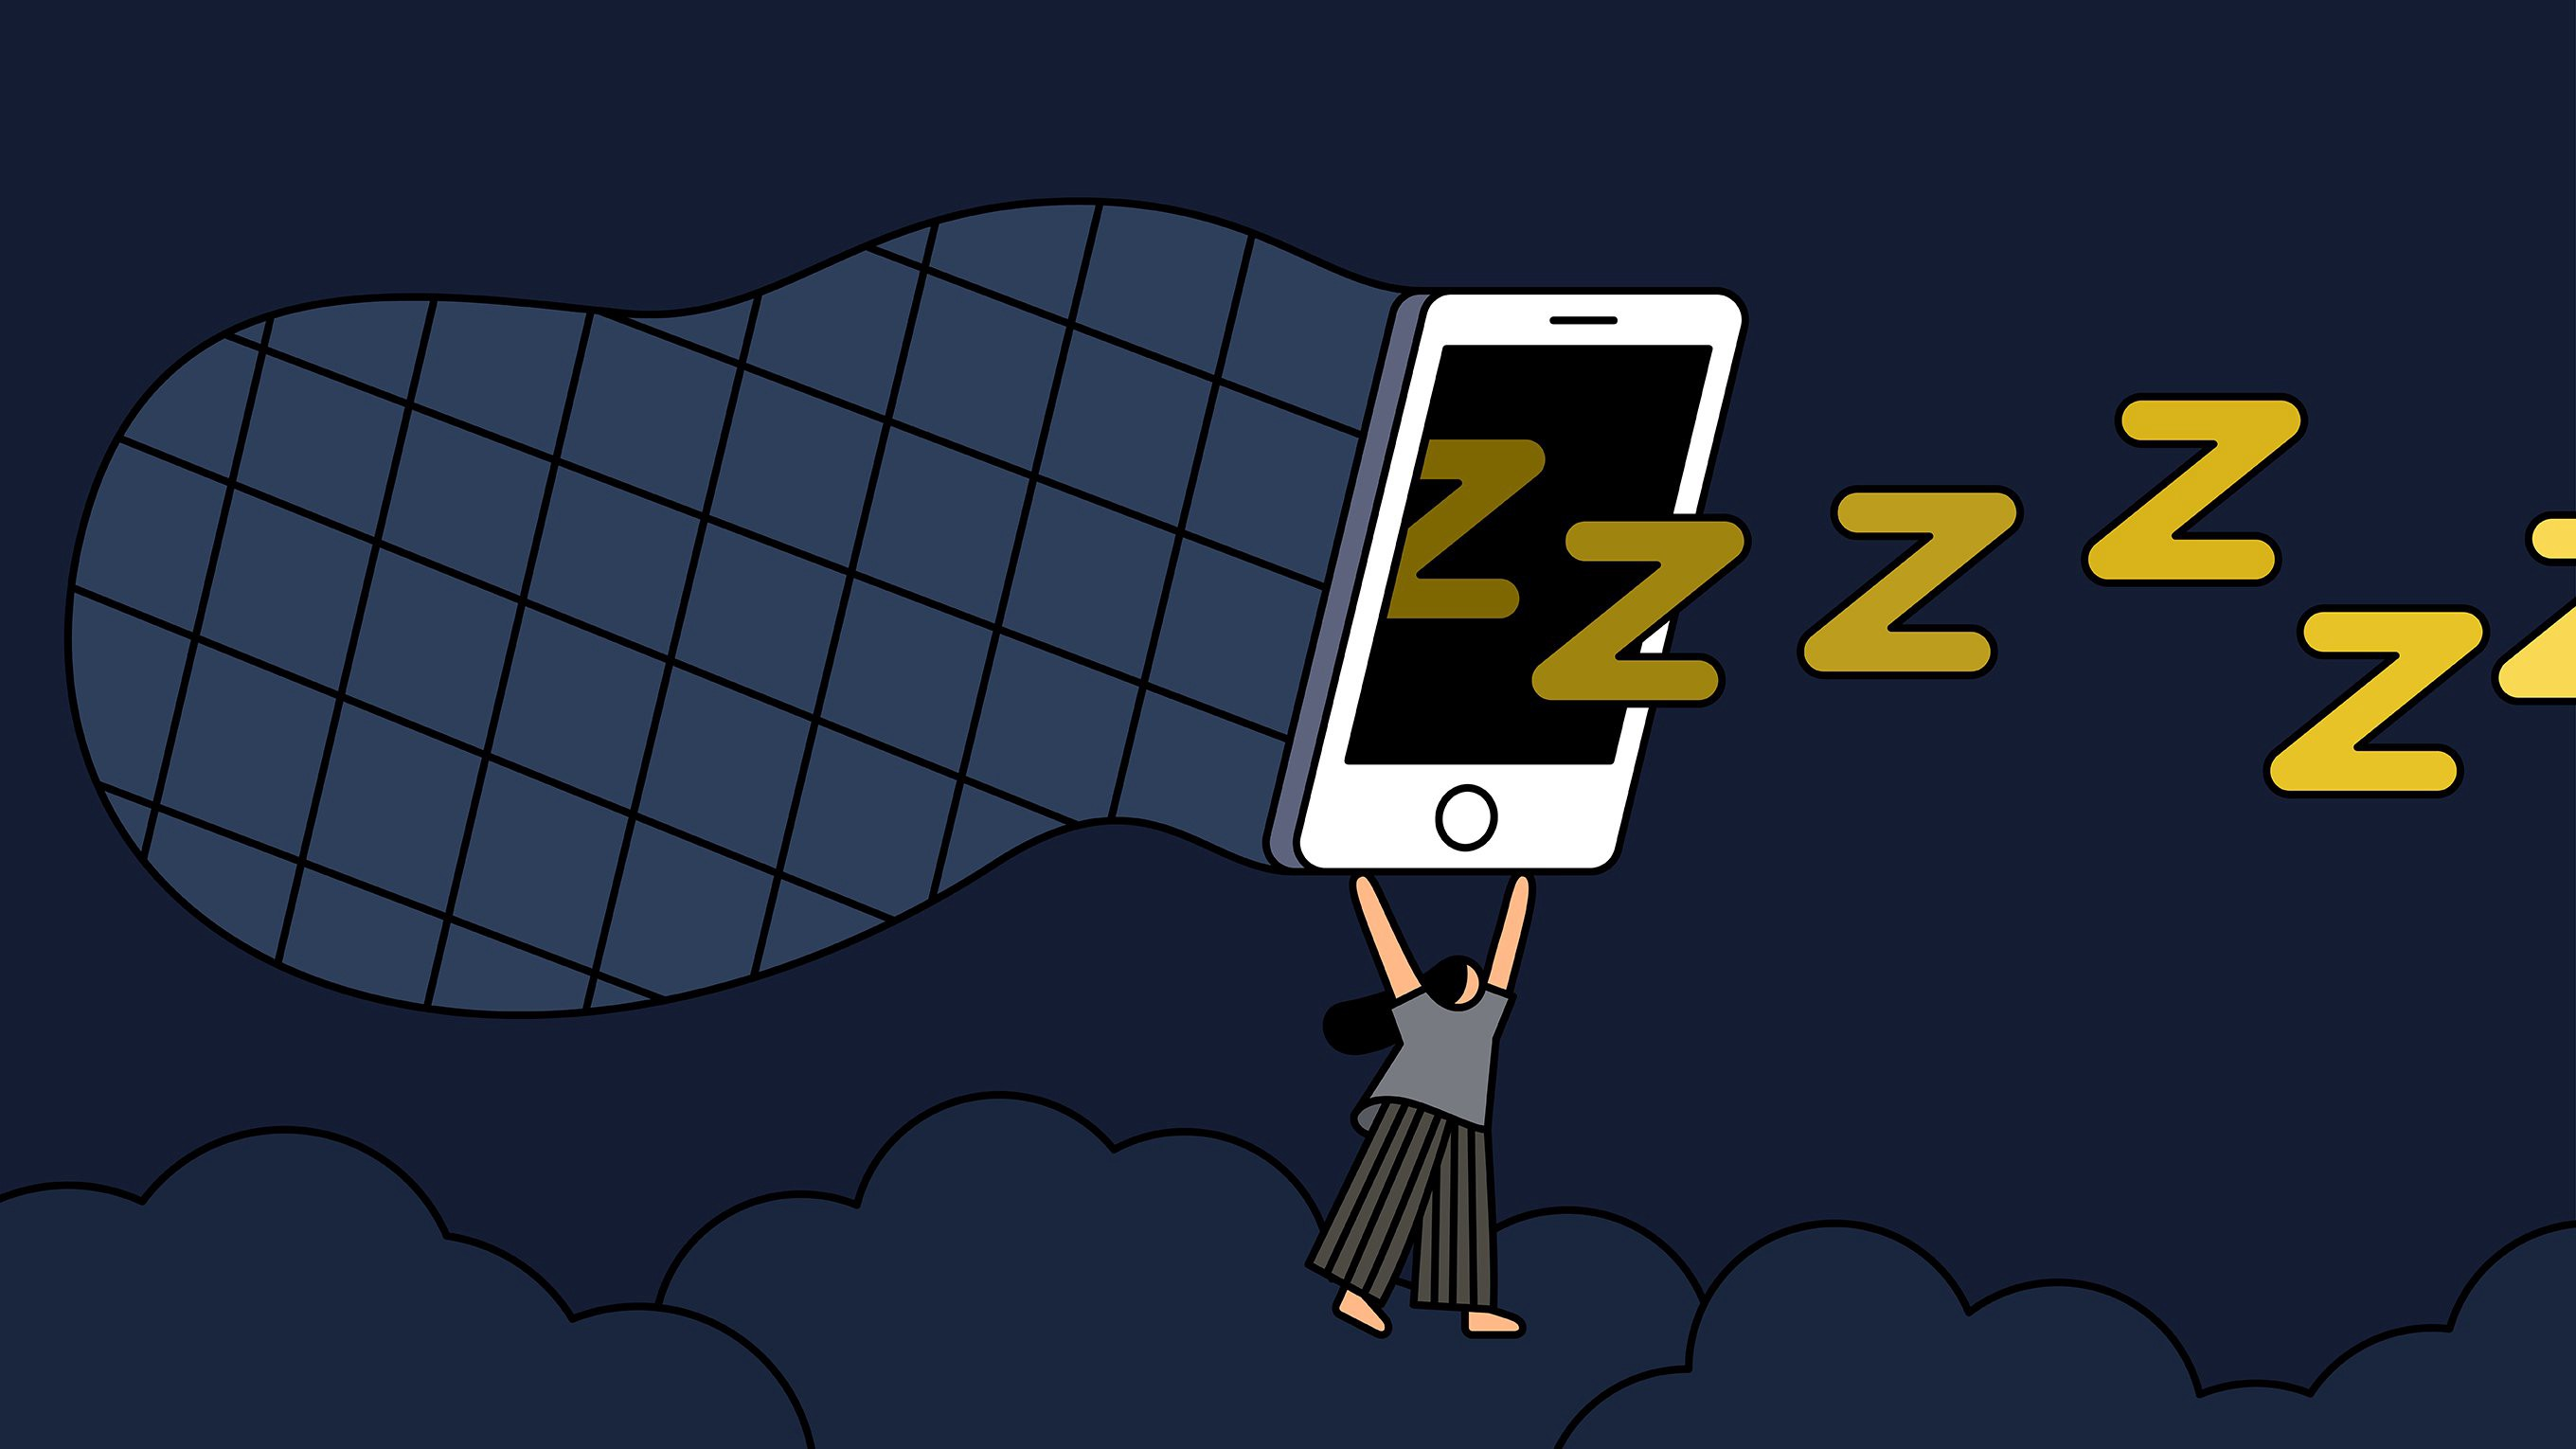 Illustration of a person wearing pajamas, holding a huge phone attached to a net, trying to capture floating yellow Z's.